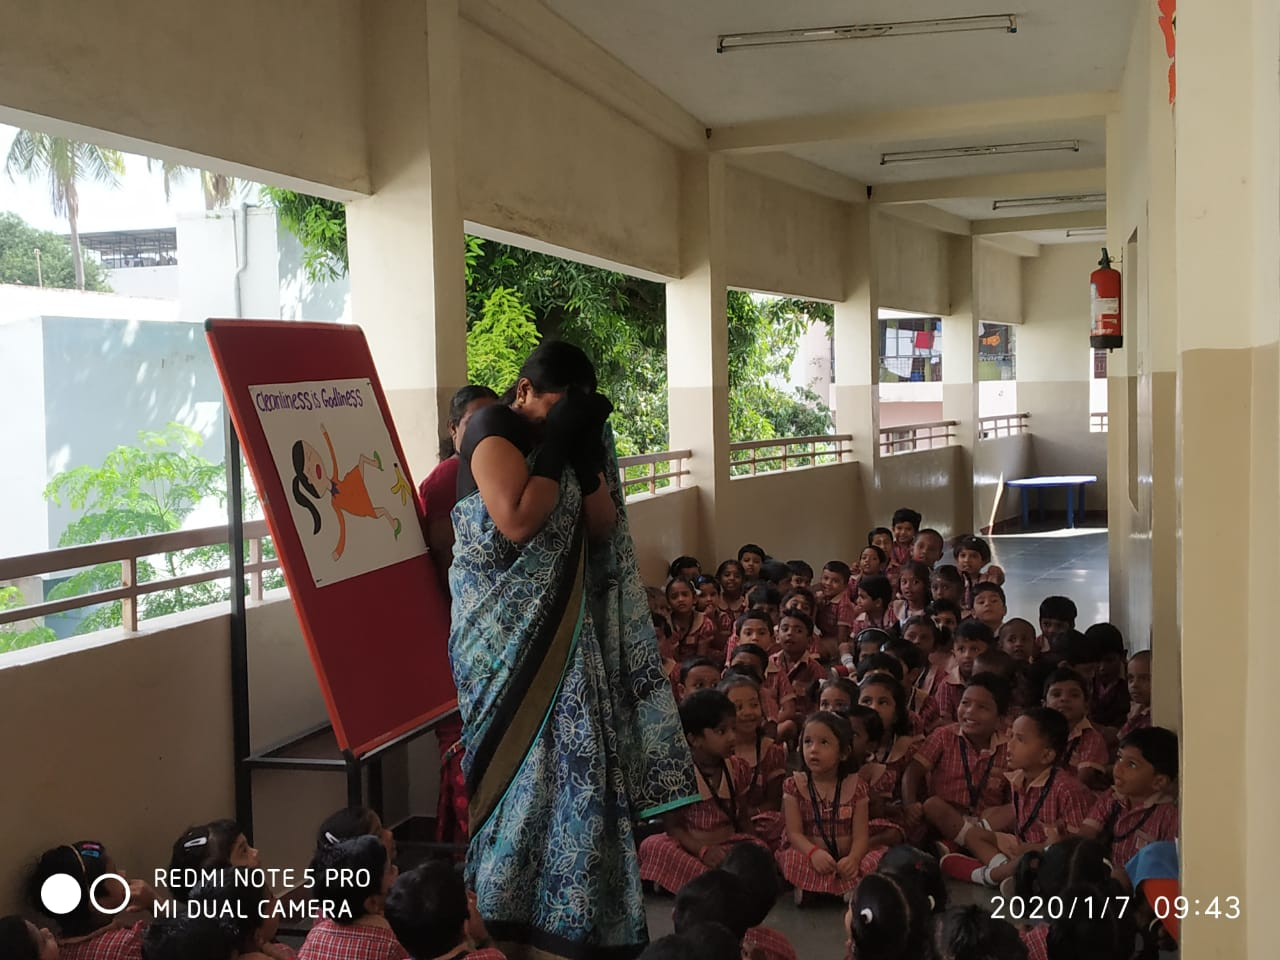 Children witnessing the skit Enthusiastically